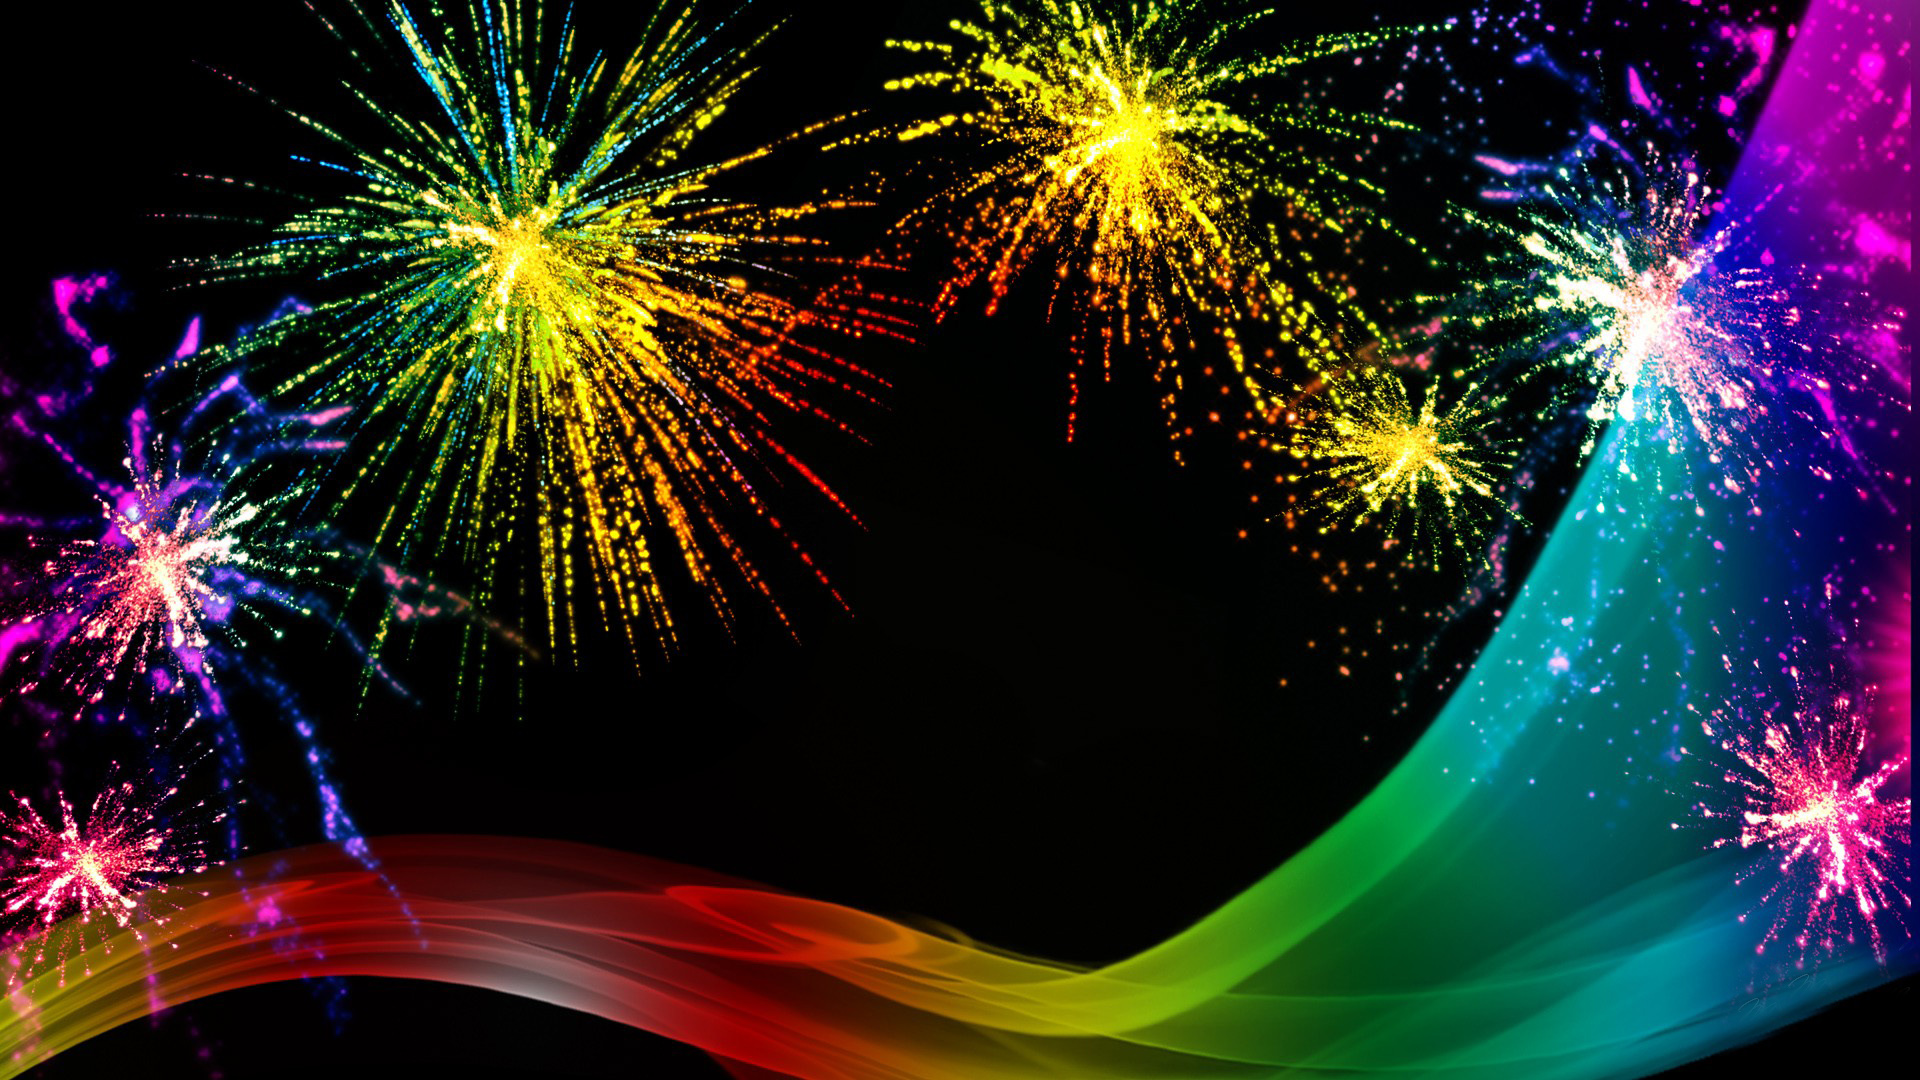 Rainbow Fireworks Celebration Colorful Abstract Image With